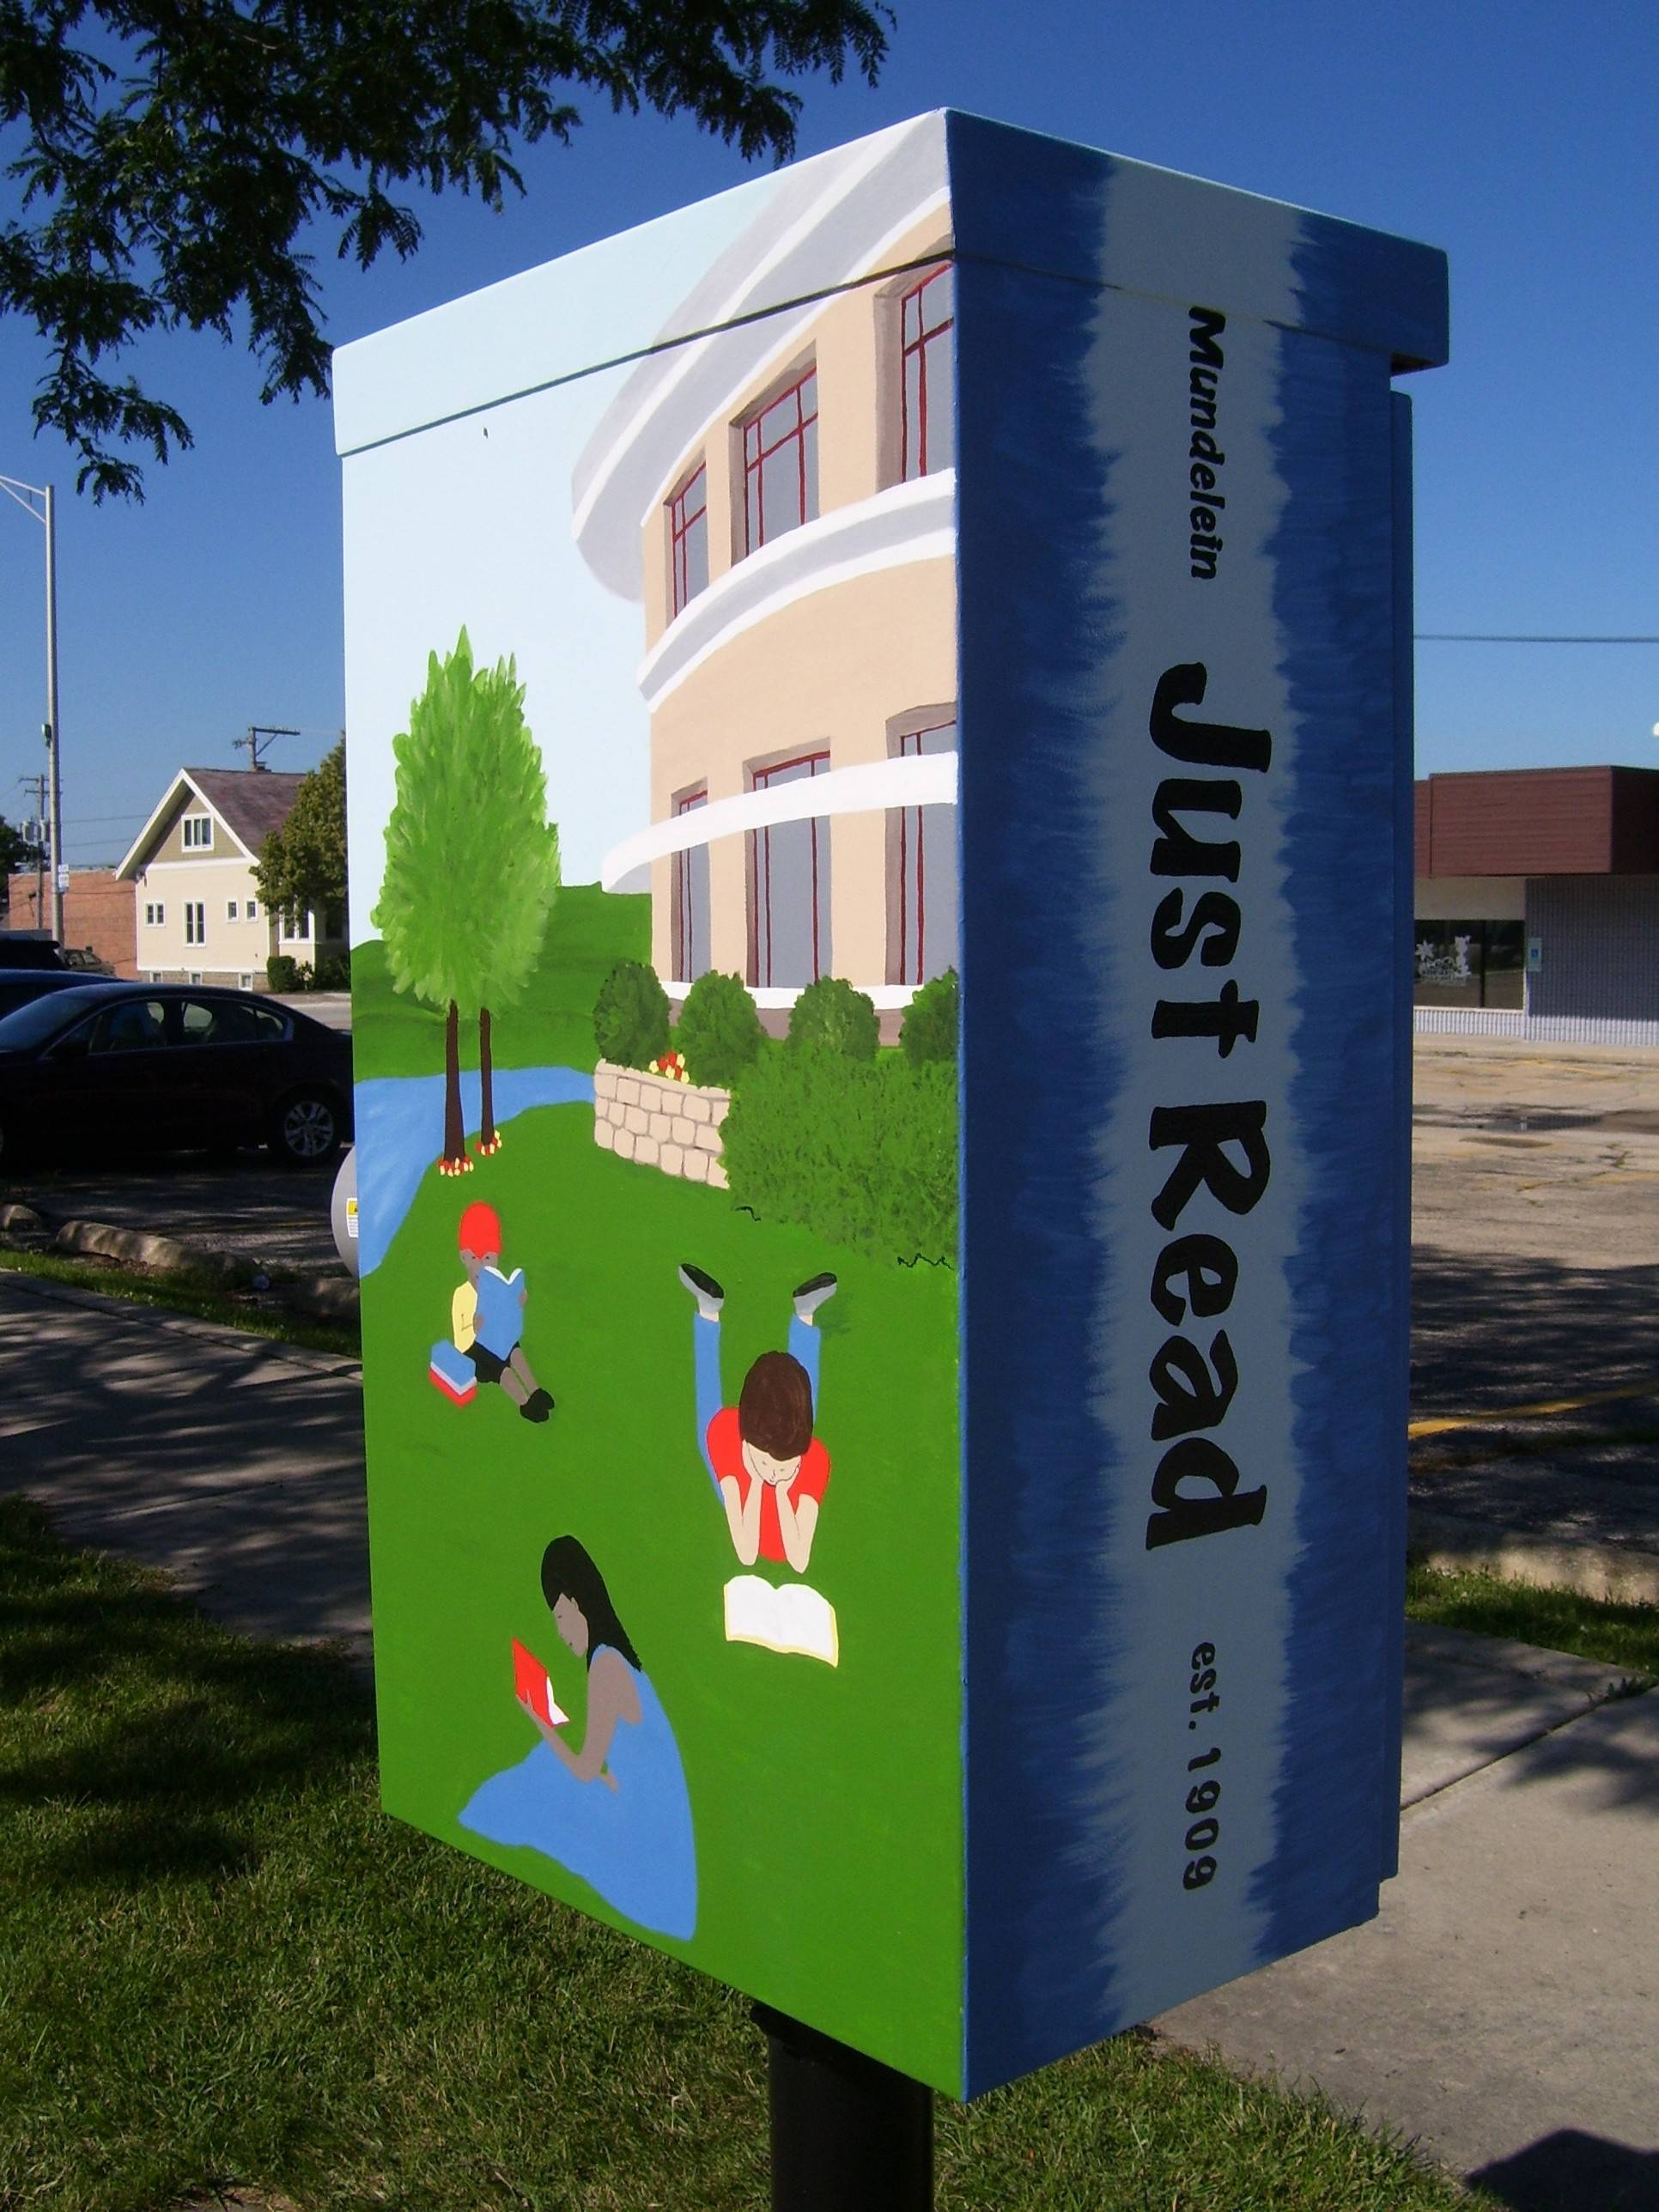 Artist Mary Hecht painted reading-themed images on a Mundelein utility box for a public art project. The project features three public utility boxes along Seymour Avenue painted by local artists.